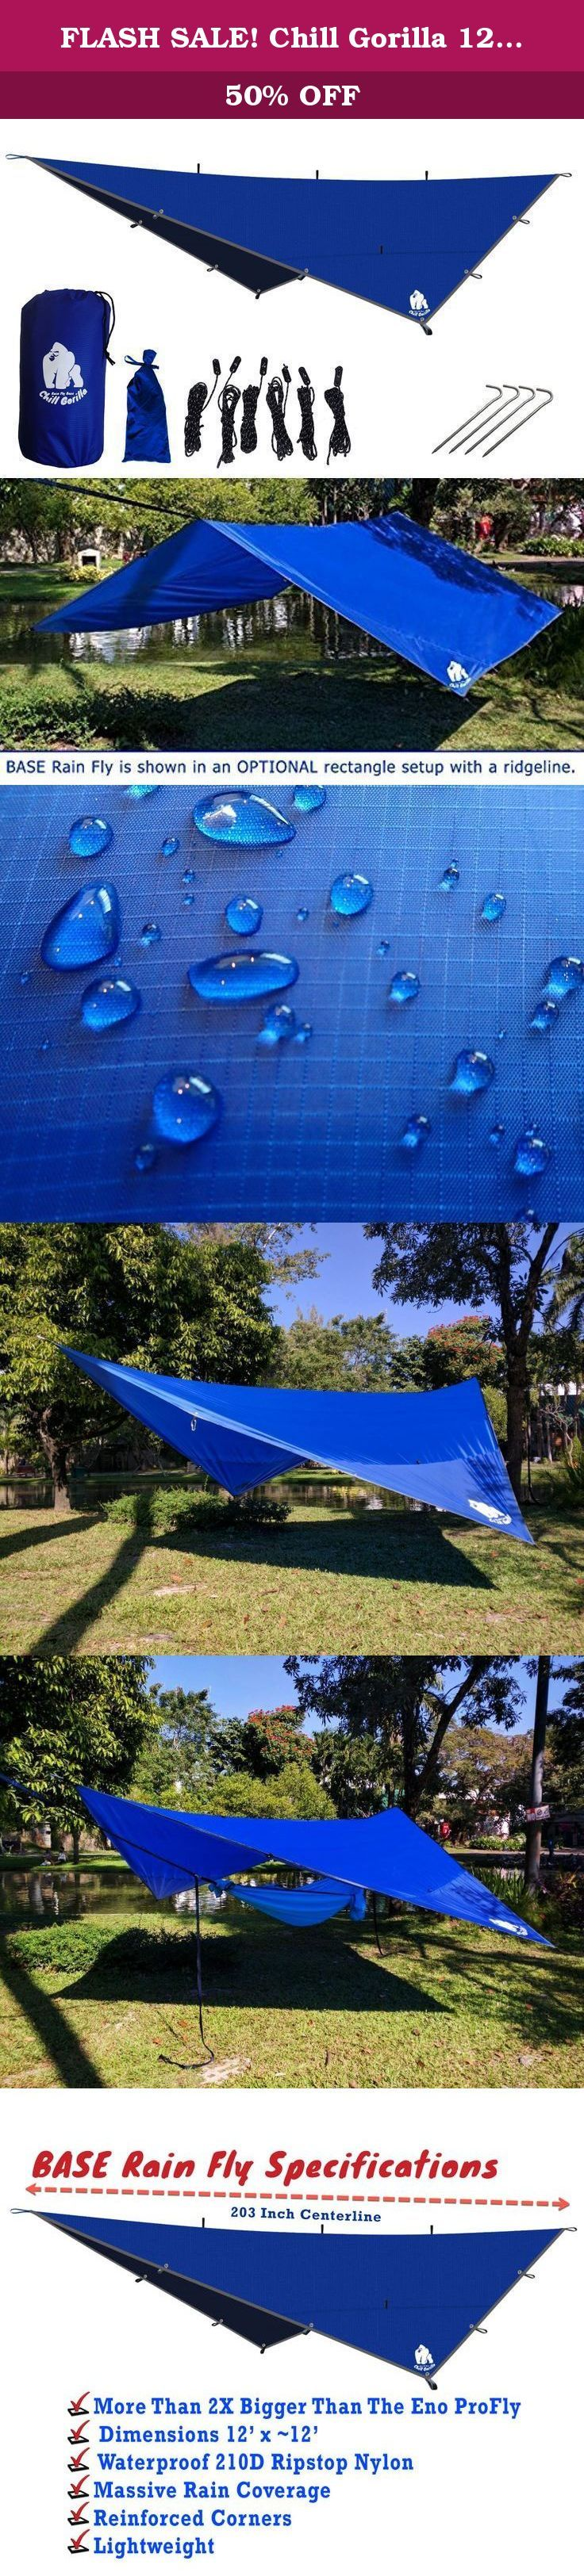 FLASH SALE! Chill Gorilla 12' Pro Rain Fly, Waterproof Tent Tarp, Hammock Shelter [Essential Camping and Survival Gear] RIPSTOP Nylon 12' x 12' Blue. ✅ #1 Rated Seller On Amazon. 100% Customer Satisfaction Approval Rating! BEAT THE RAIN! Do you need sound, foul-weather protection that is fast and easy to setup? Chill Gorilla's Rain Fly sets up fast, packs light, and keeps you dry. Our weatherproofing process completely saturates the rainfly (not just sprayed). This process costs more and…